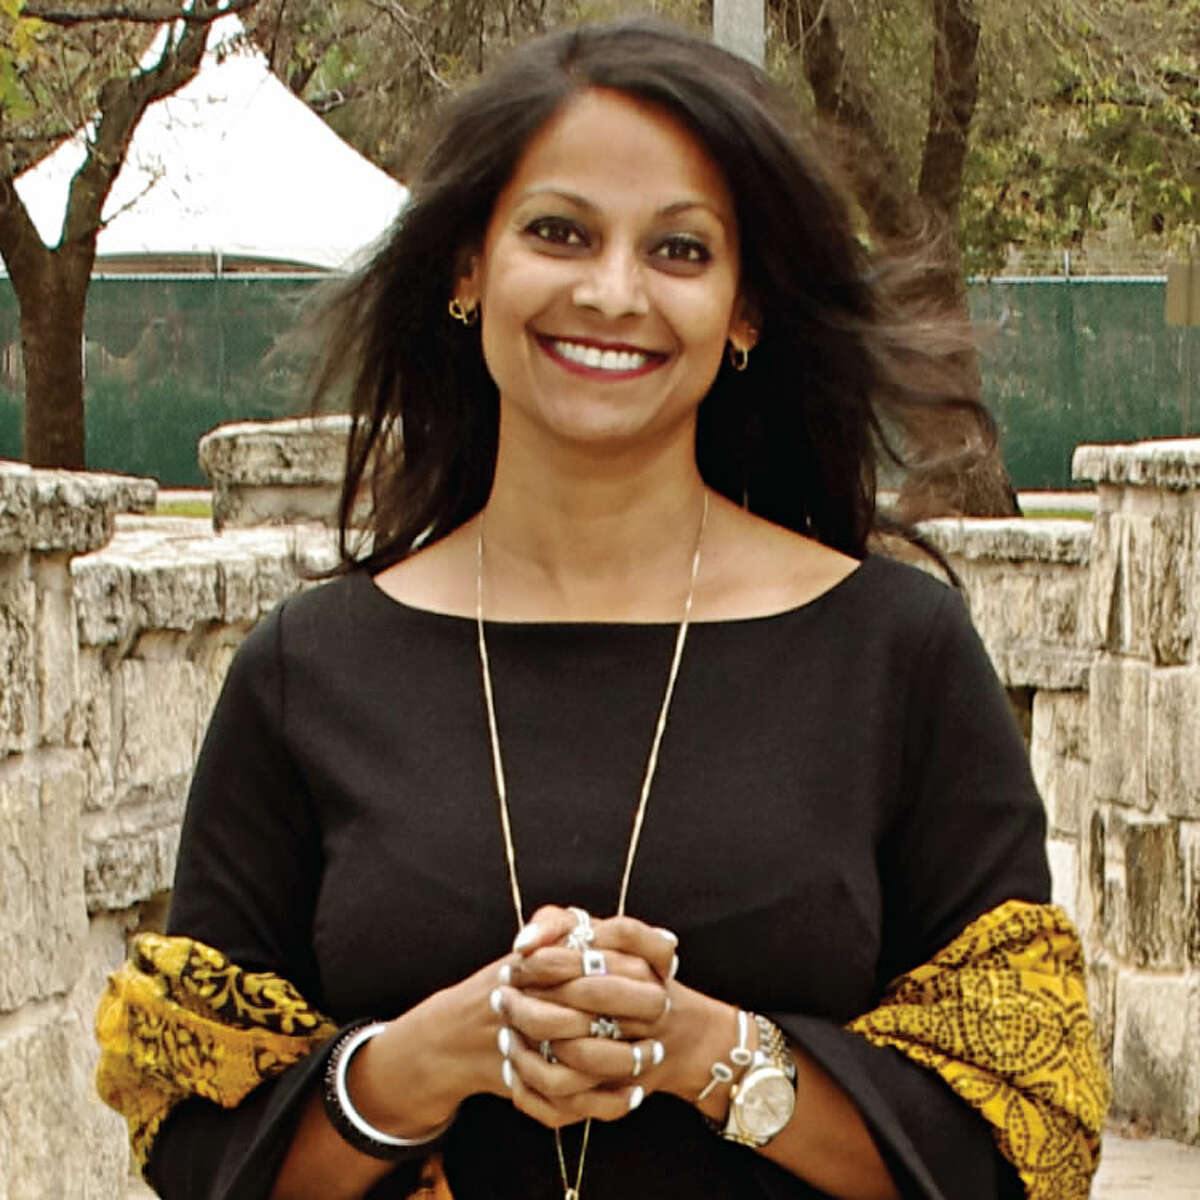 Lay's recently selected Mona Patel, founder of San Antonio amputee foundation, to be featured on one of its potato chip bags due to her